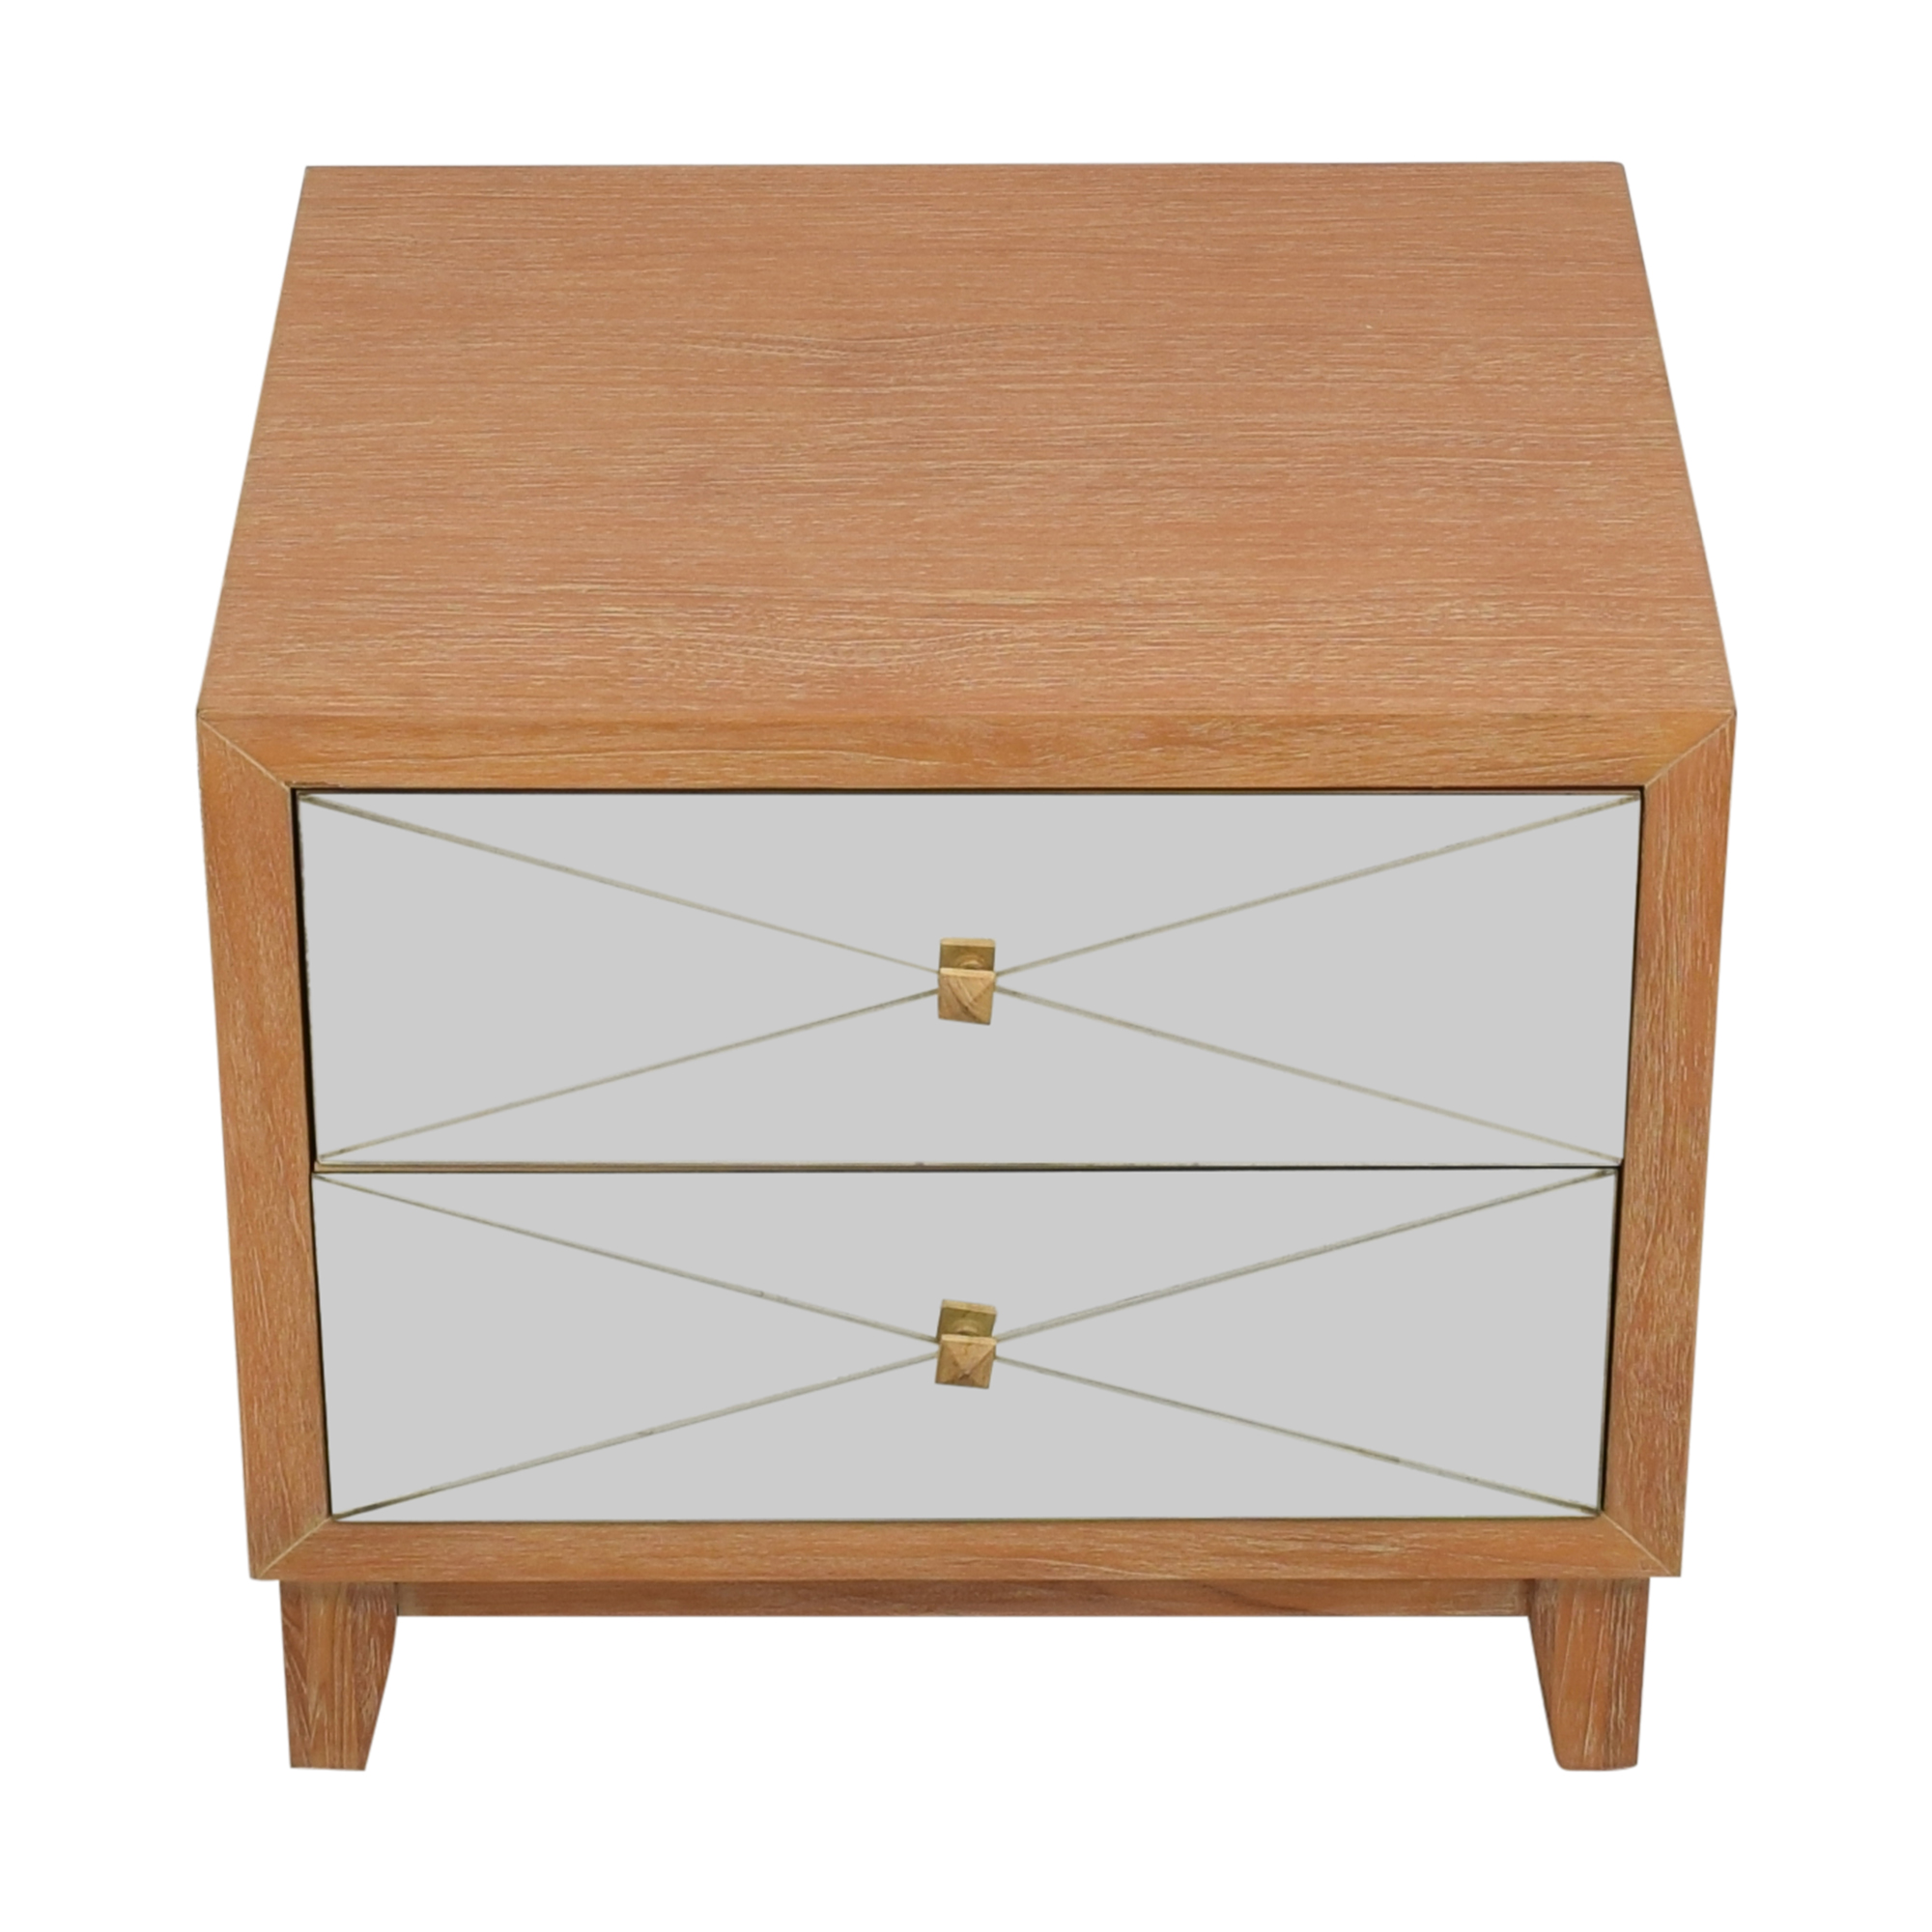 Brownstone Furniture Brownstone Furniture Mirrored Nightstand End Tables